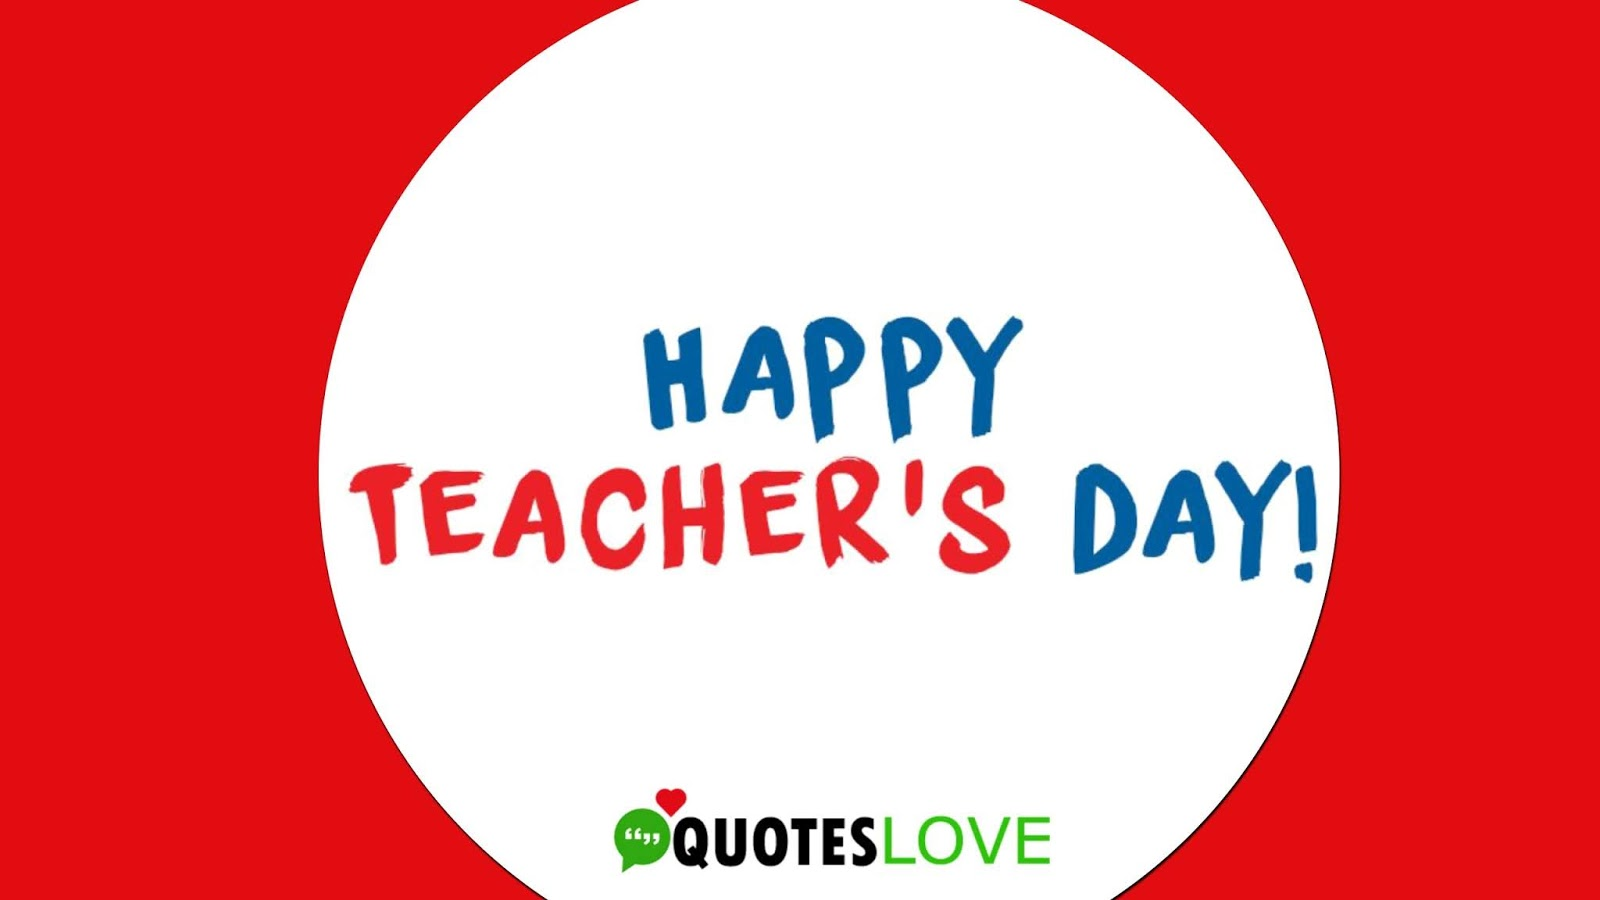 60+ (New) Happy Teachers Day Quotes, Status, Wishes, Images and Messages for Year 2019